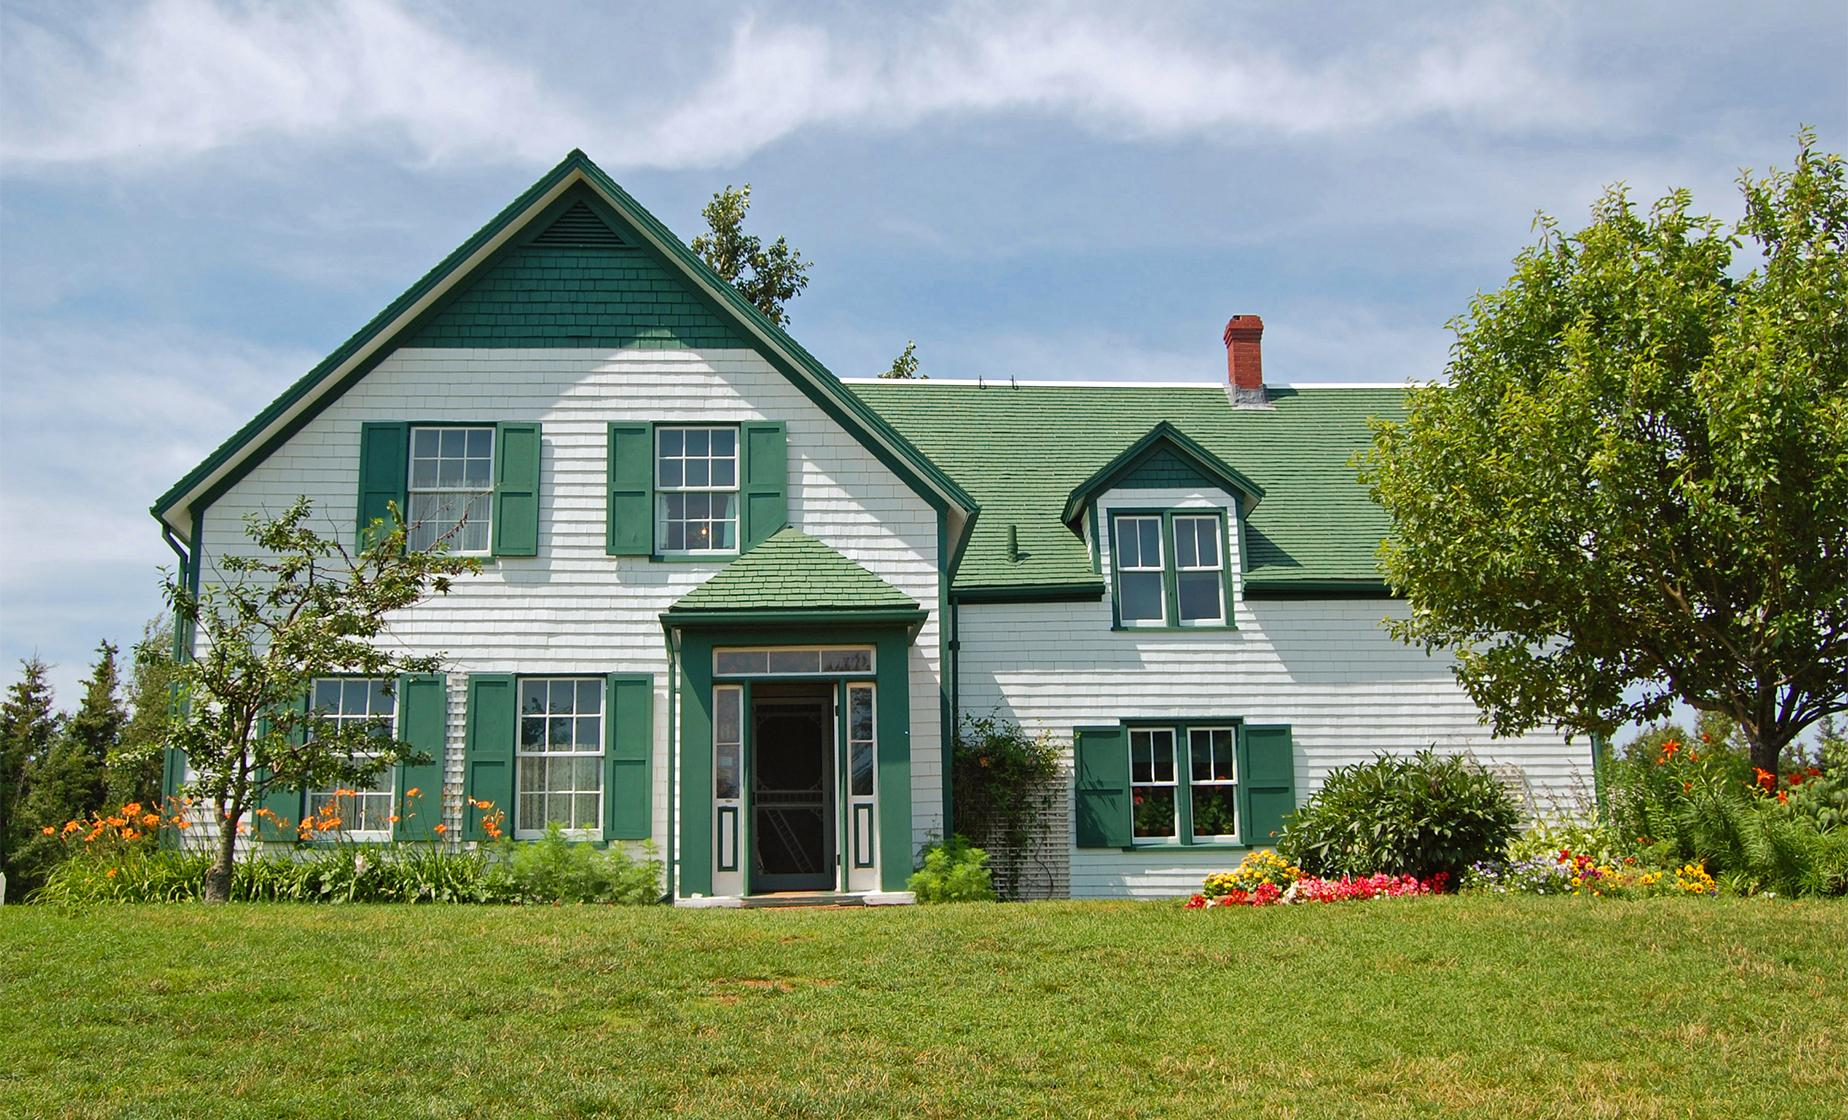 Anne of Green Gables House and Island Drive (Prince Edward Island, Cavendish Beach)